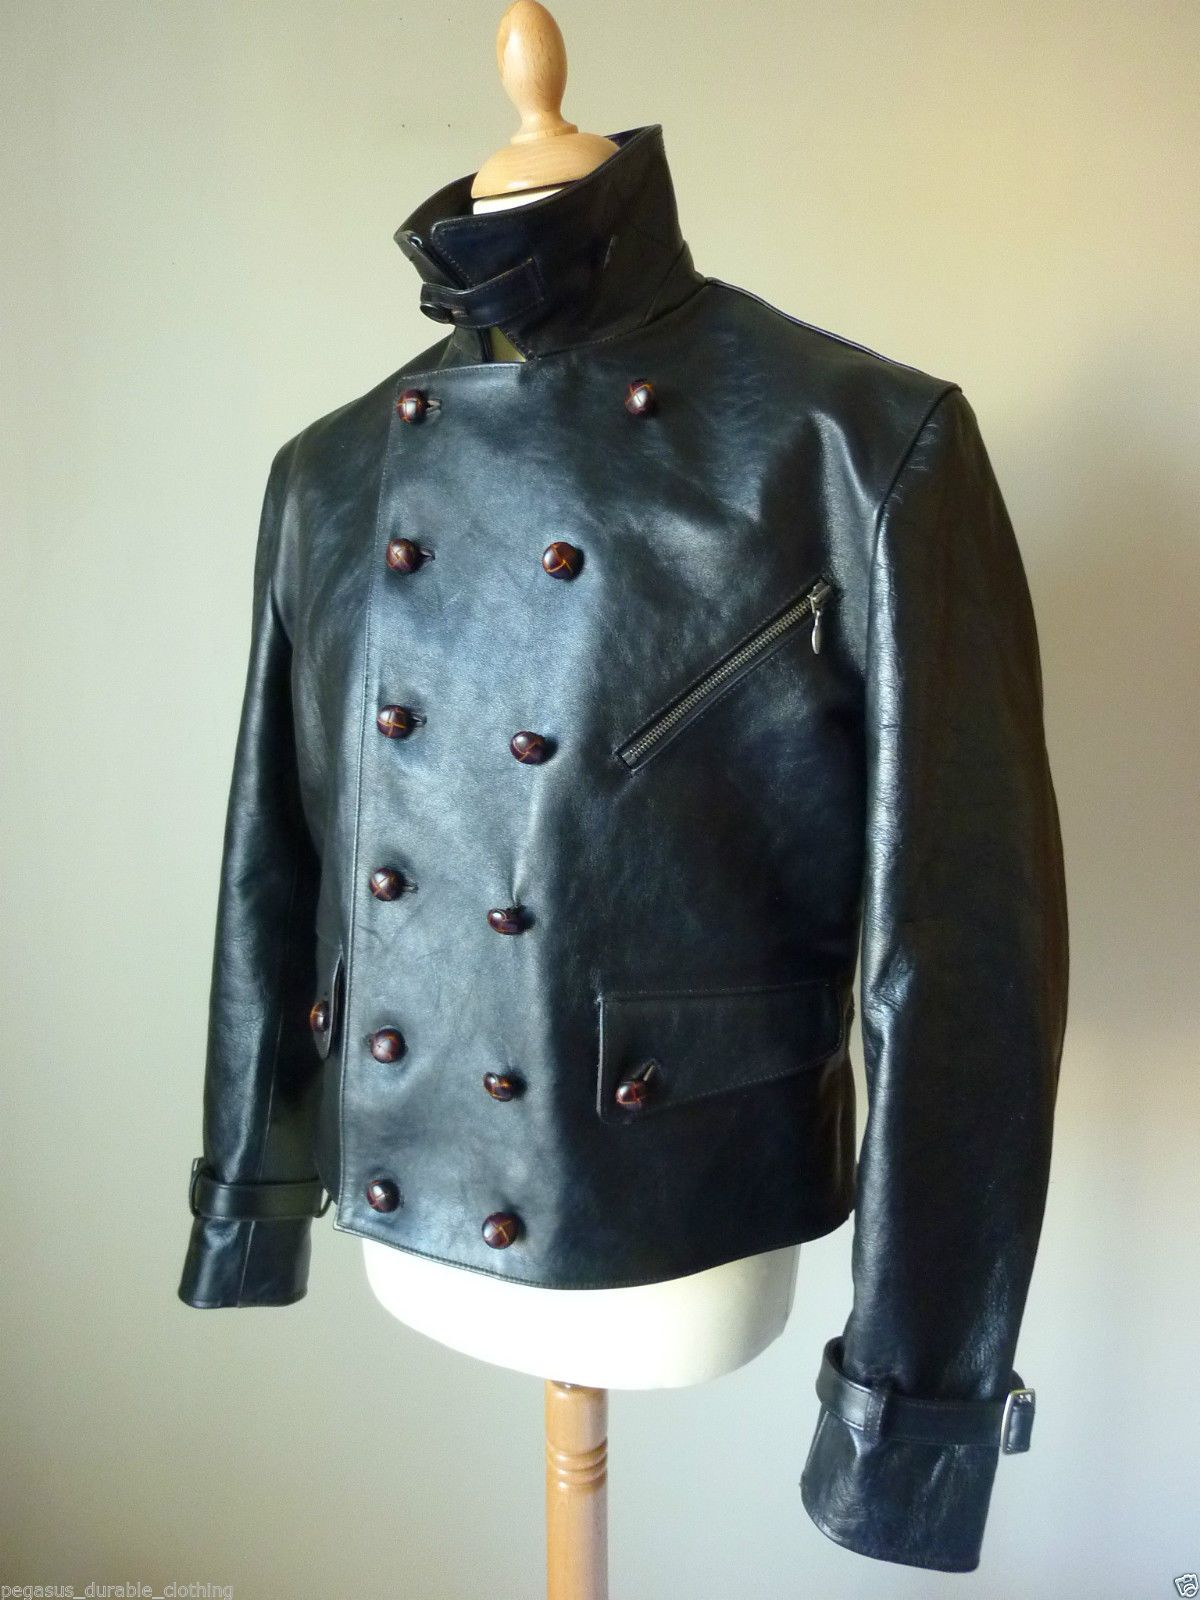 Pegasus Double Breasted Luftwaffe He Double Breasted Or Doppelreihiger Luftwaffe Style Was Made Famous Leather Jacket Men Leather Coat Jacket Vintage Jacket [ 1600 x 1200 Pixel ]